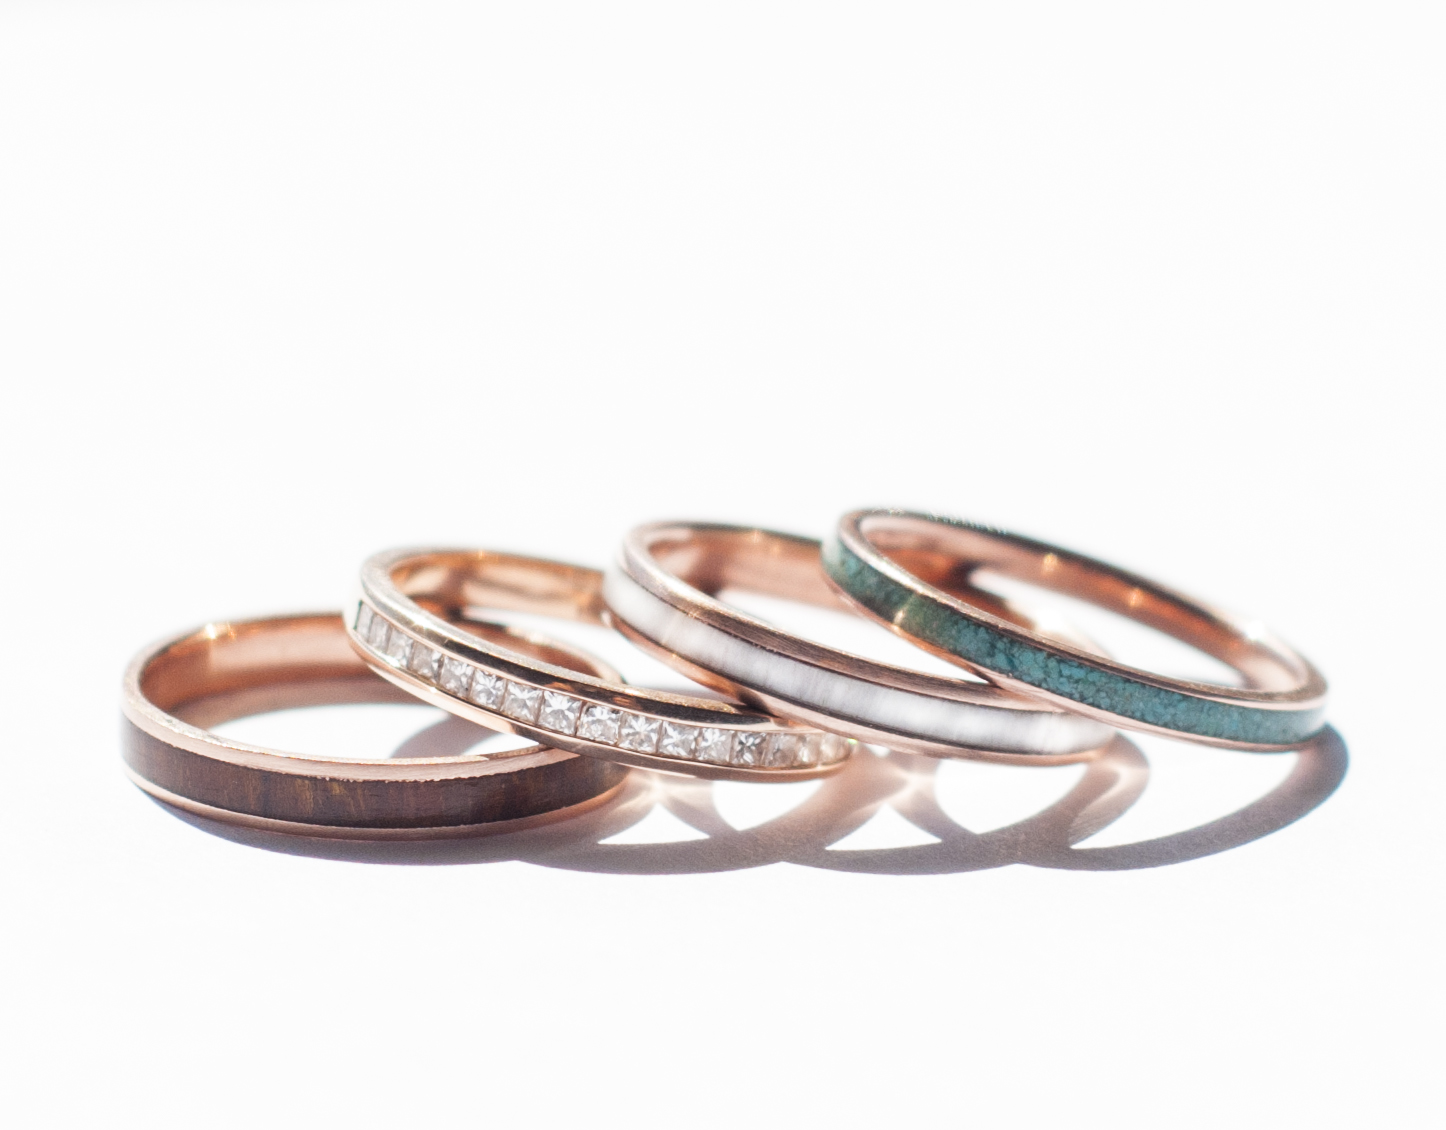 10K ROSE GOLD STACKING WEDDING BANDS available w diamond wood